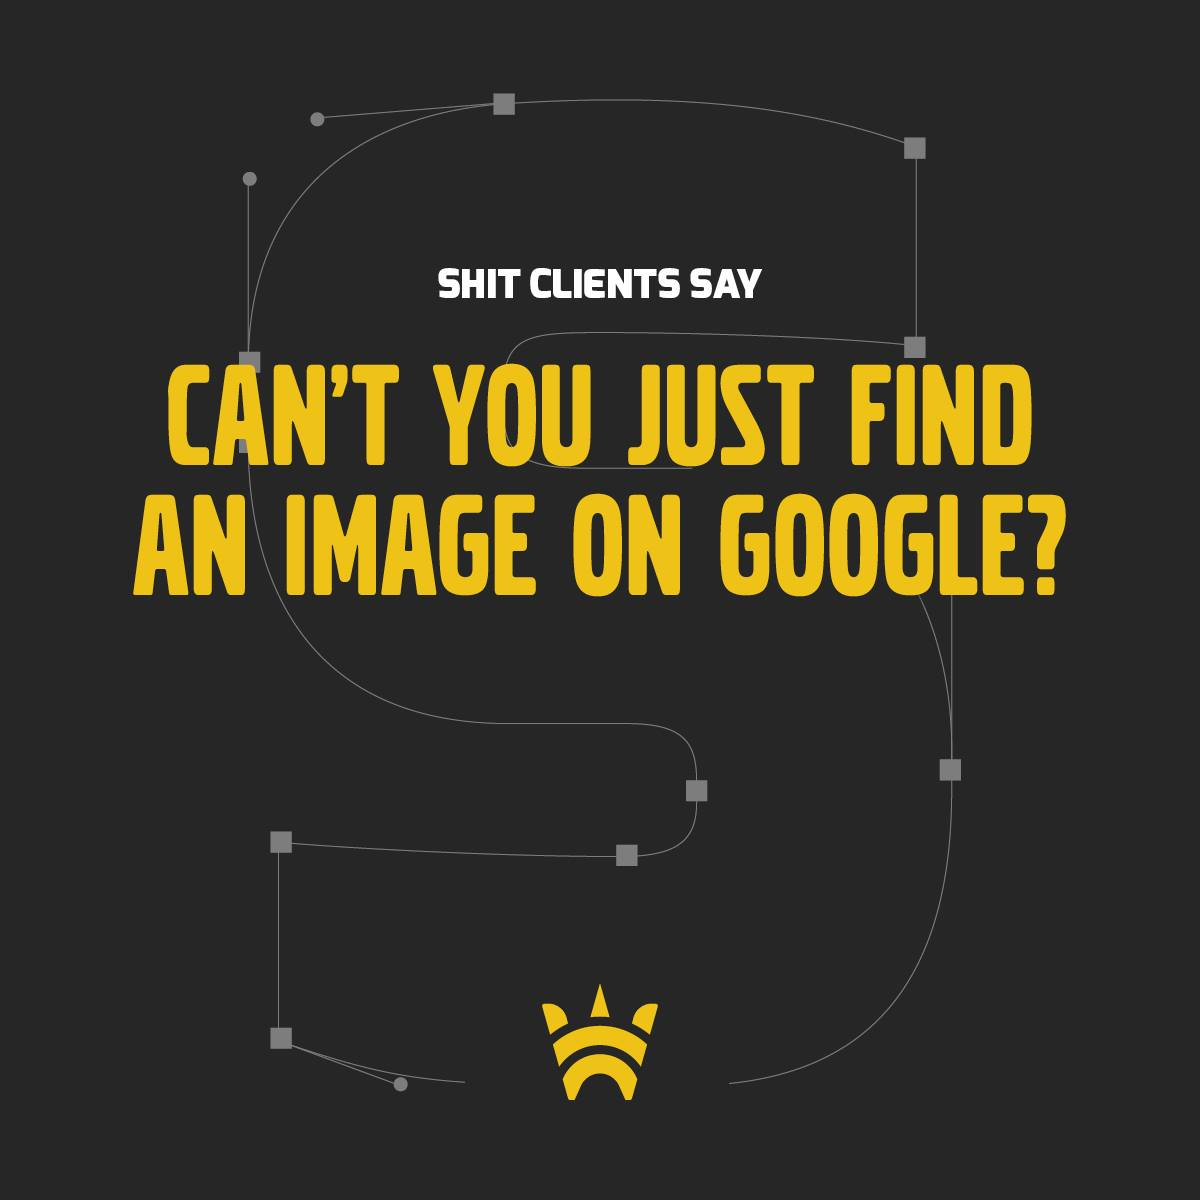 Can't you just find an image on Google?